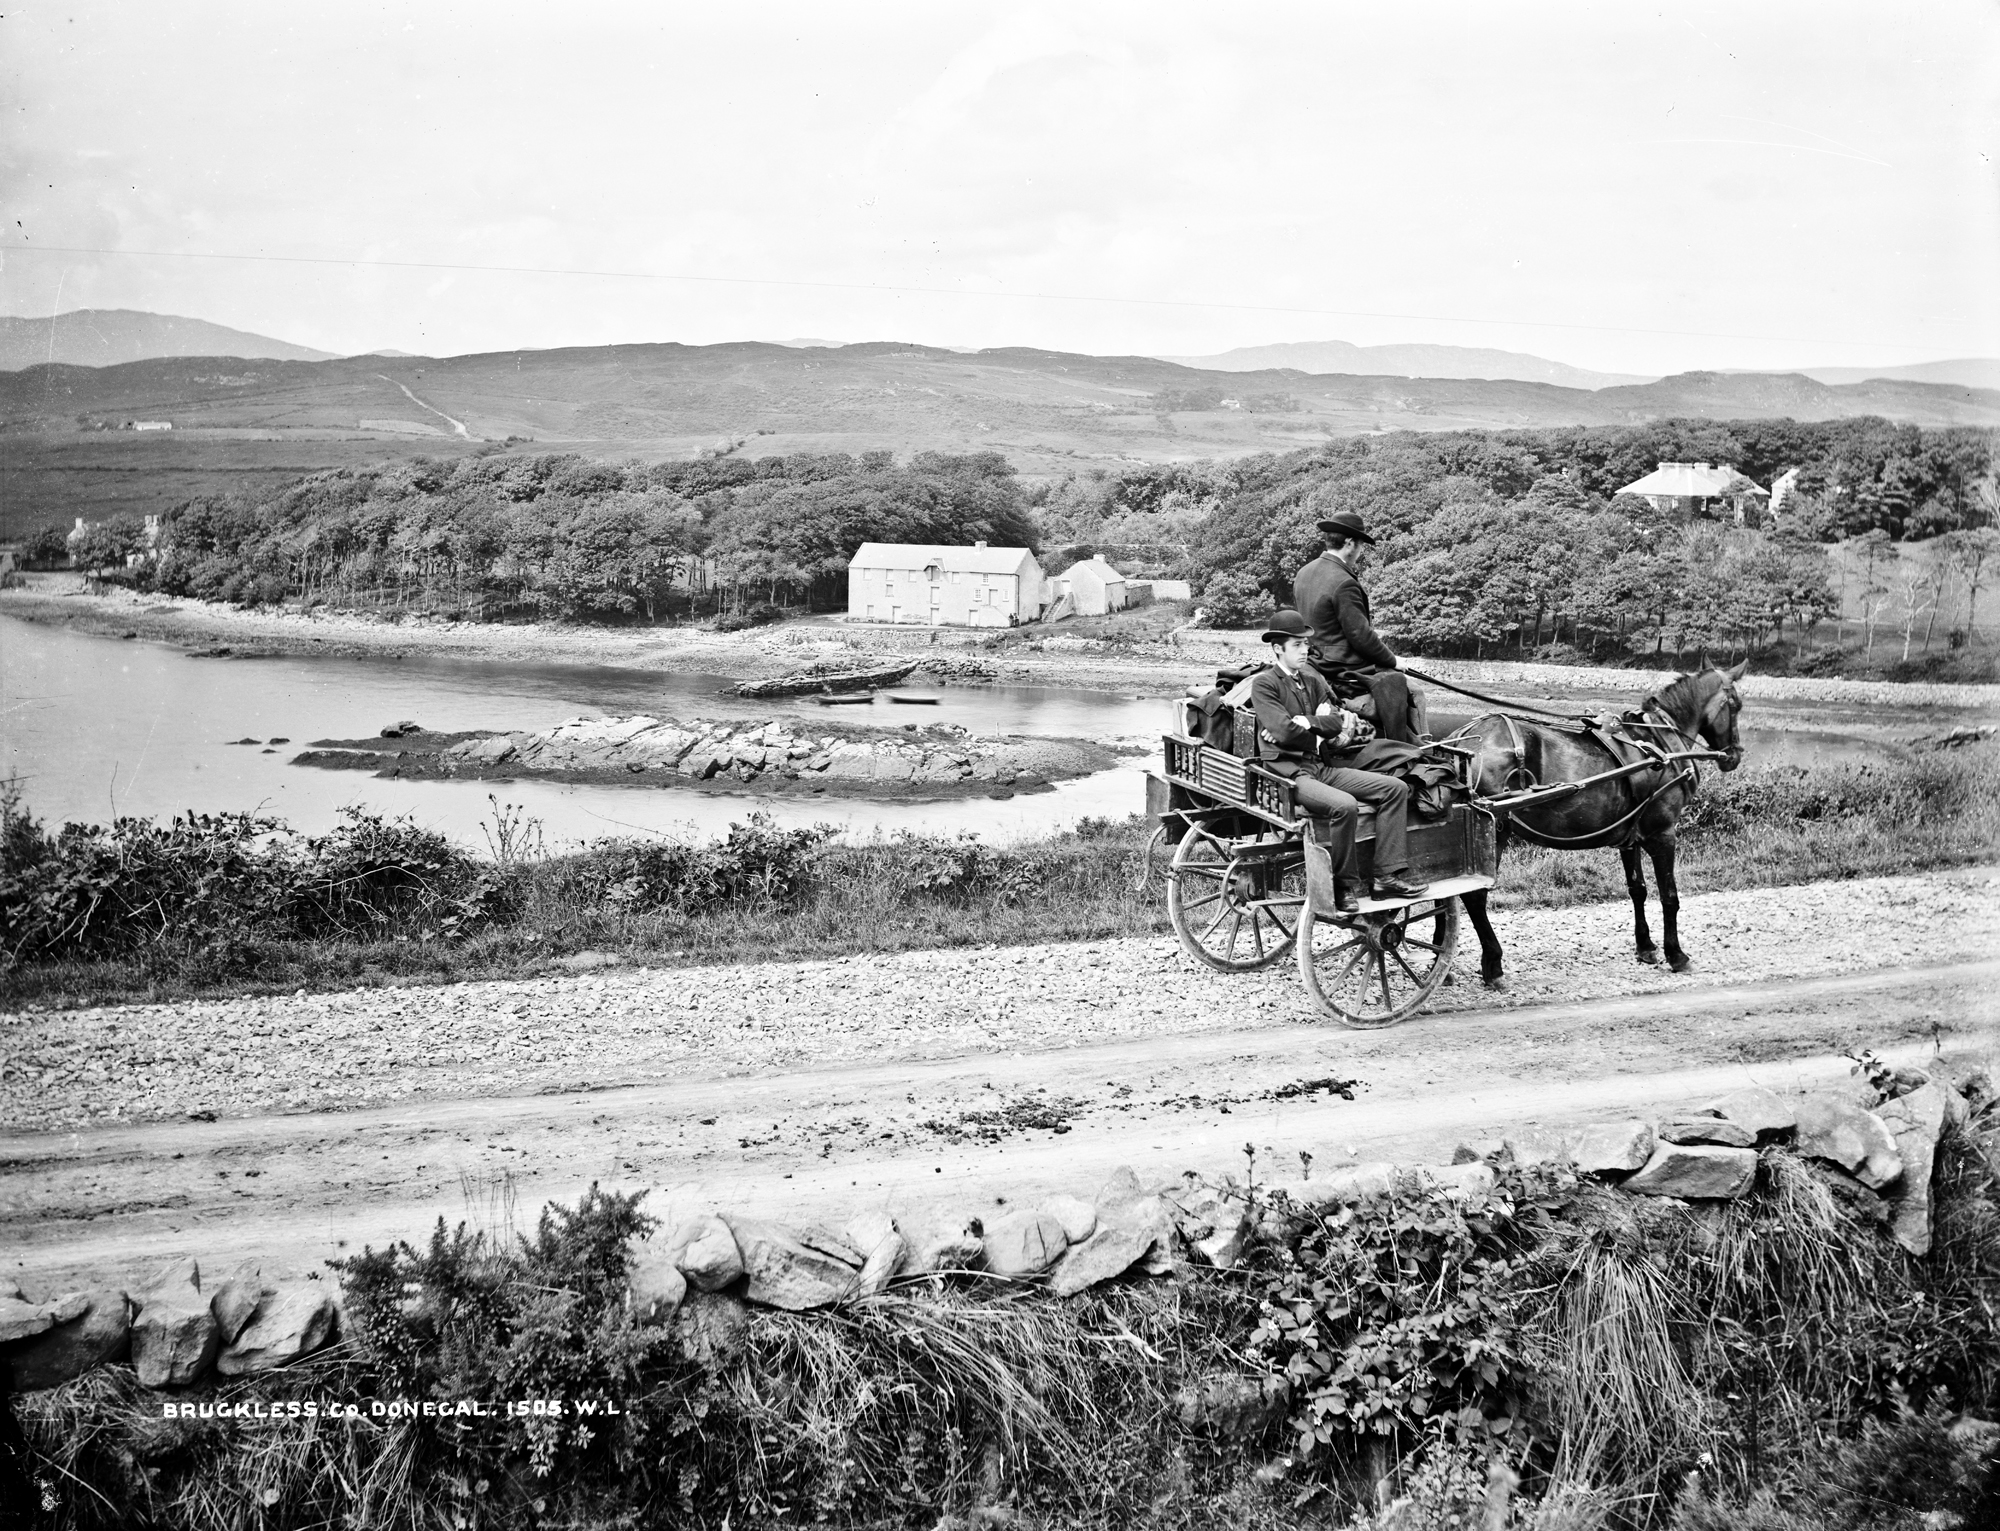 General View, Bruckless, Co. Donegal